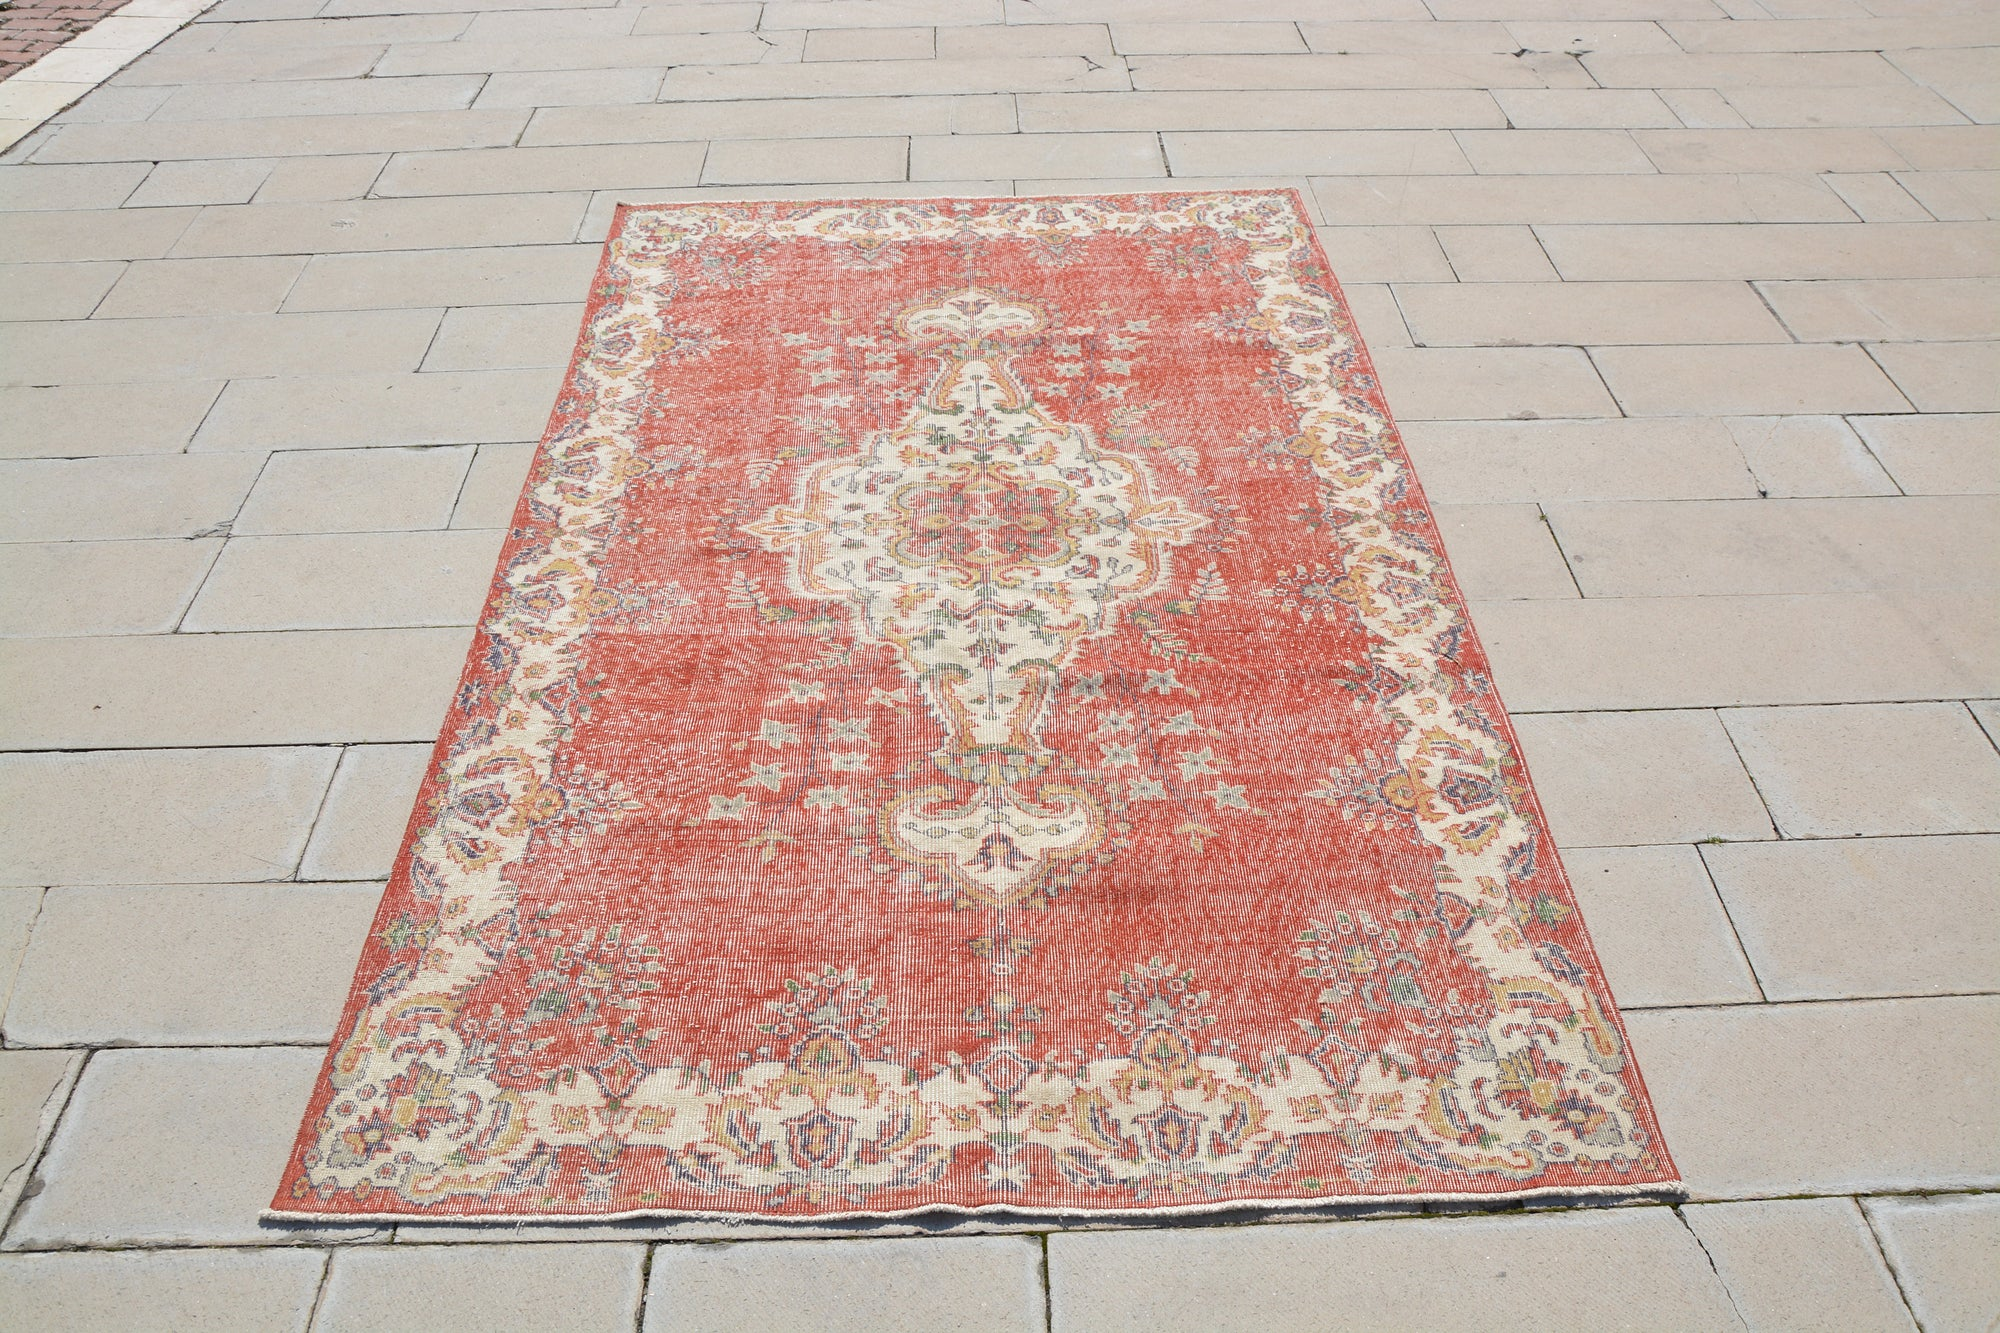 Turkey Rug, Turkey Rug Wool, Fine Rugs, Hand Woven Turkish Rugs, Colourful Turkish Rug, Discount Oriental Carpets,  5.8 x 9.3 Feet AG1117